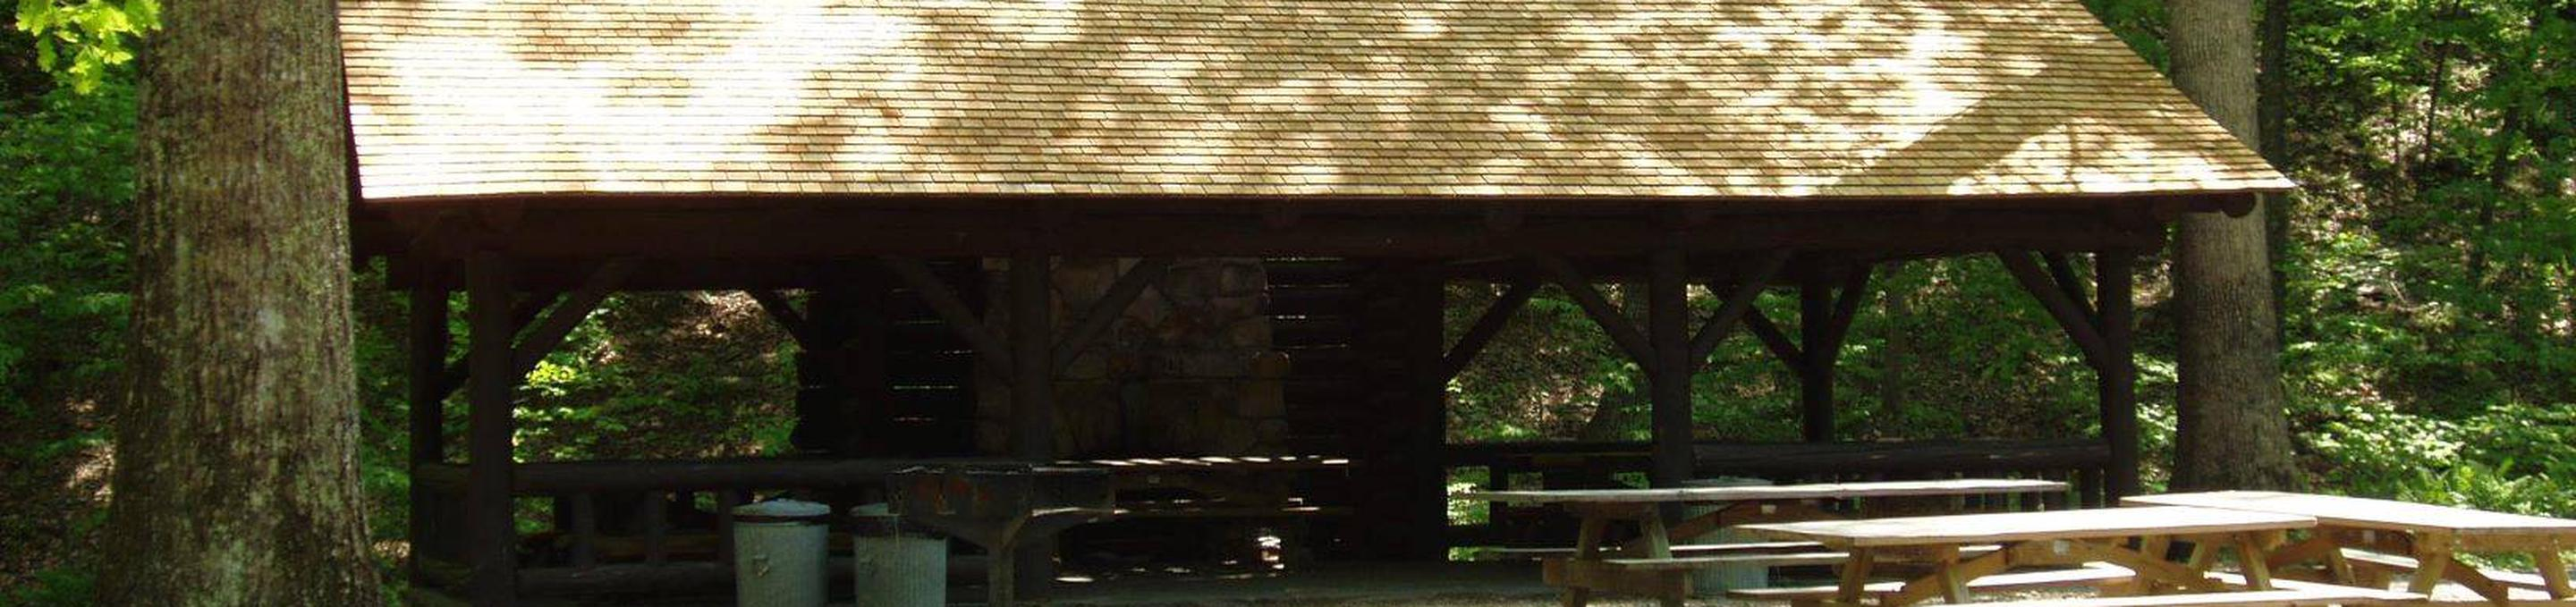 Williams Branch Picnic Shelter